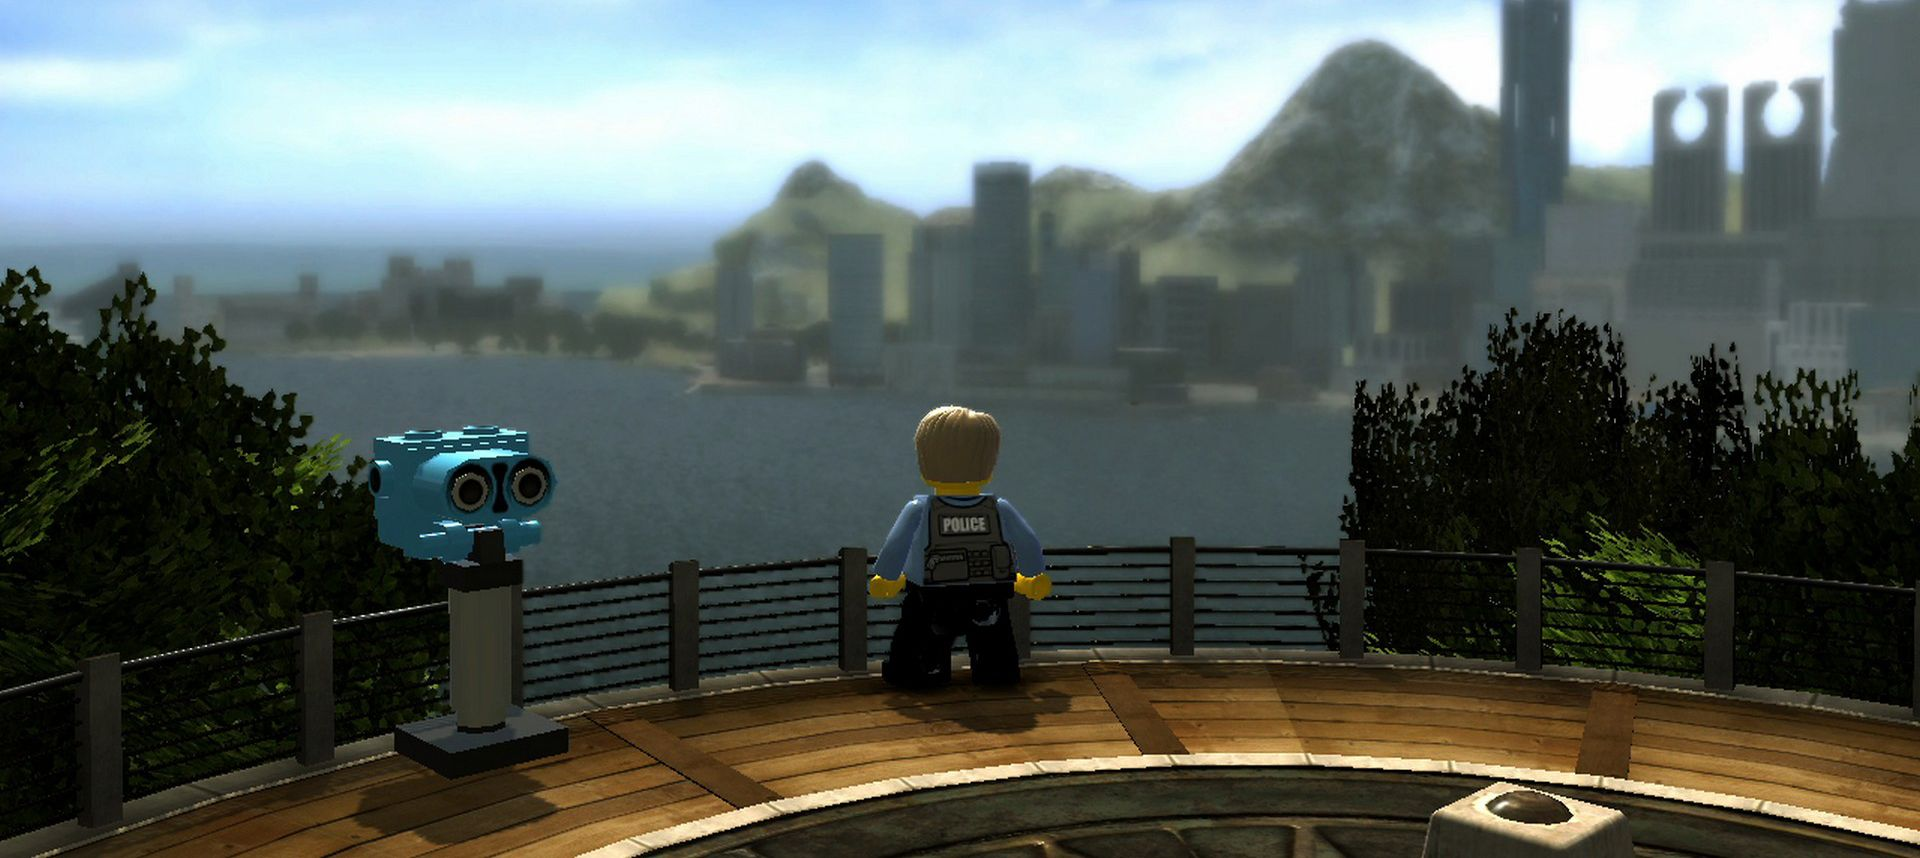 Publicity still for LEGO City Undercover